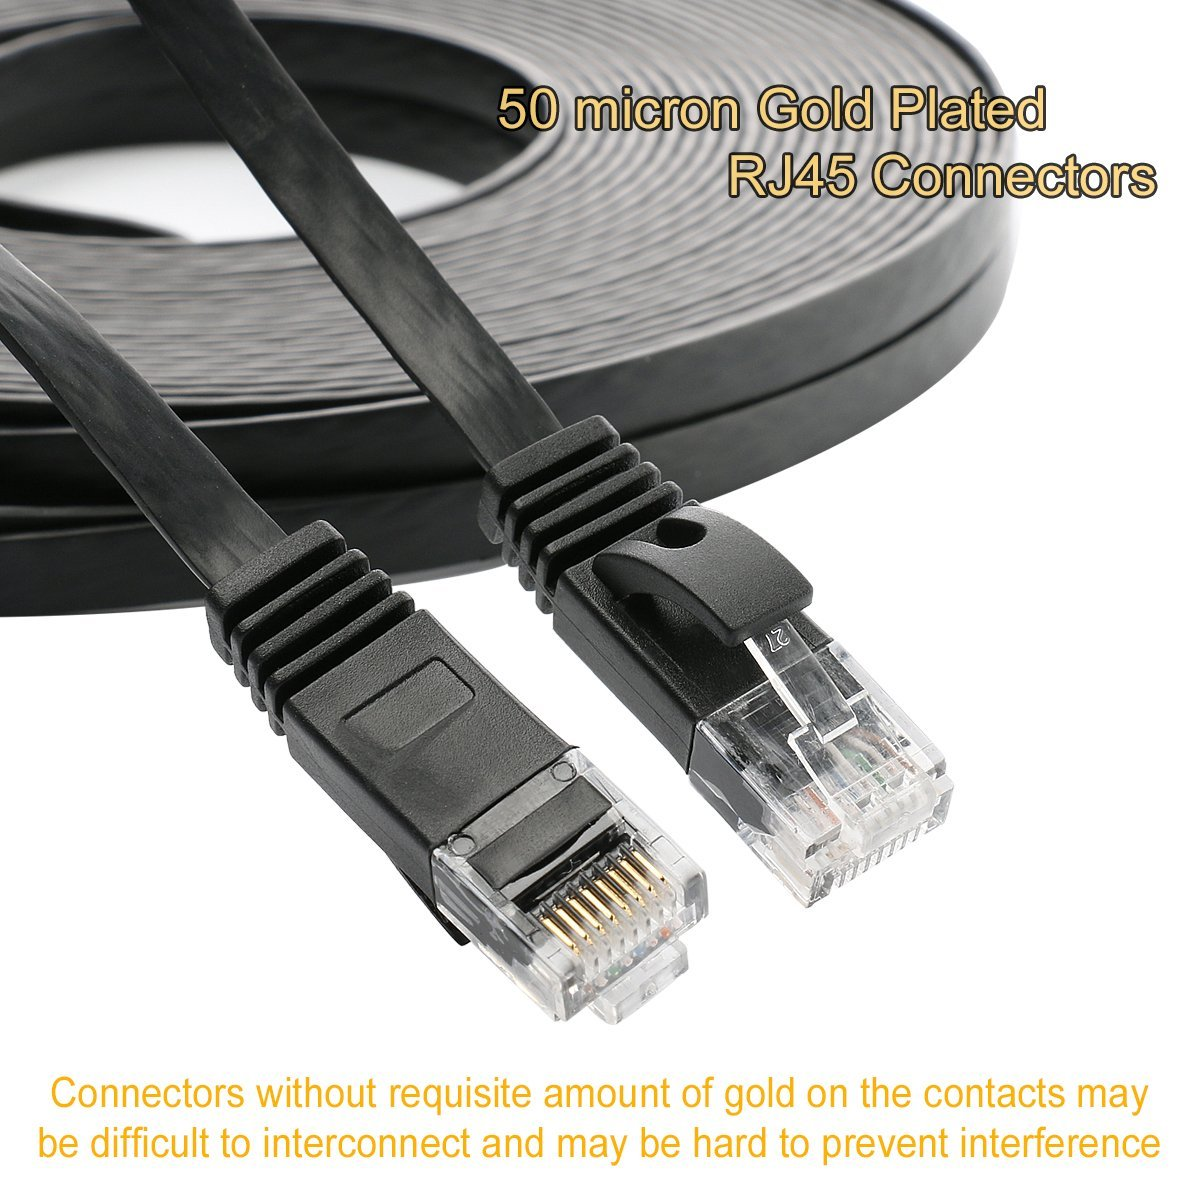 Jadaol Cat 6 Ethernet Cable 35 Ft Black With Clips Network Cables Cat5e White Flat Patch 32 Awg Foot Internet Computer Lan Cat6